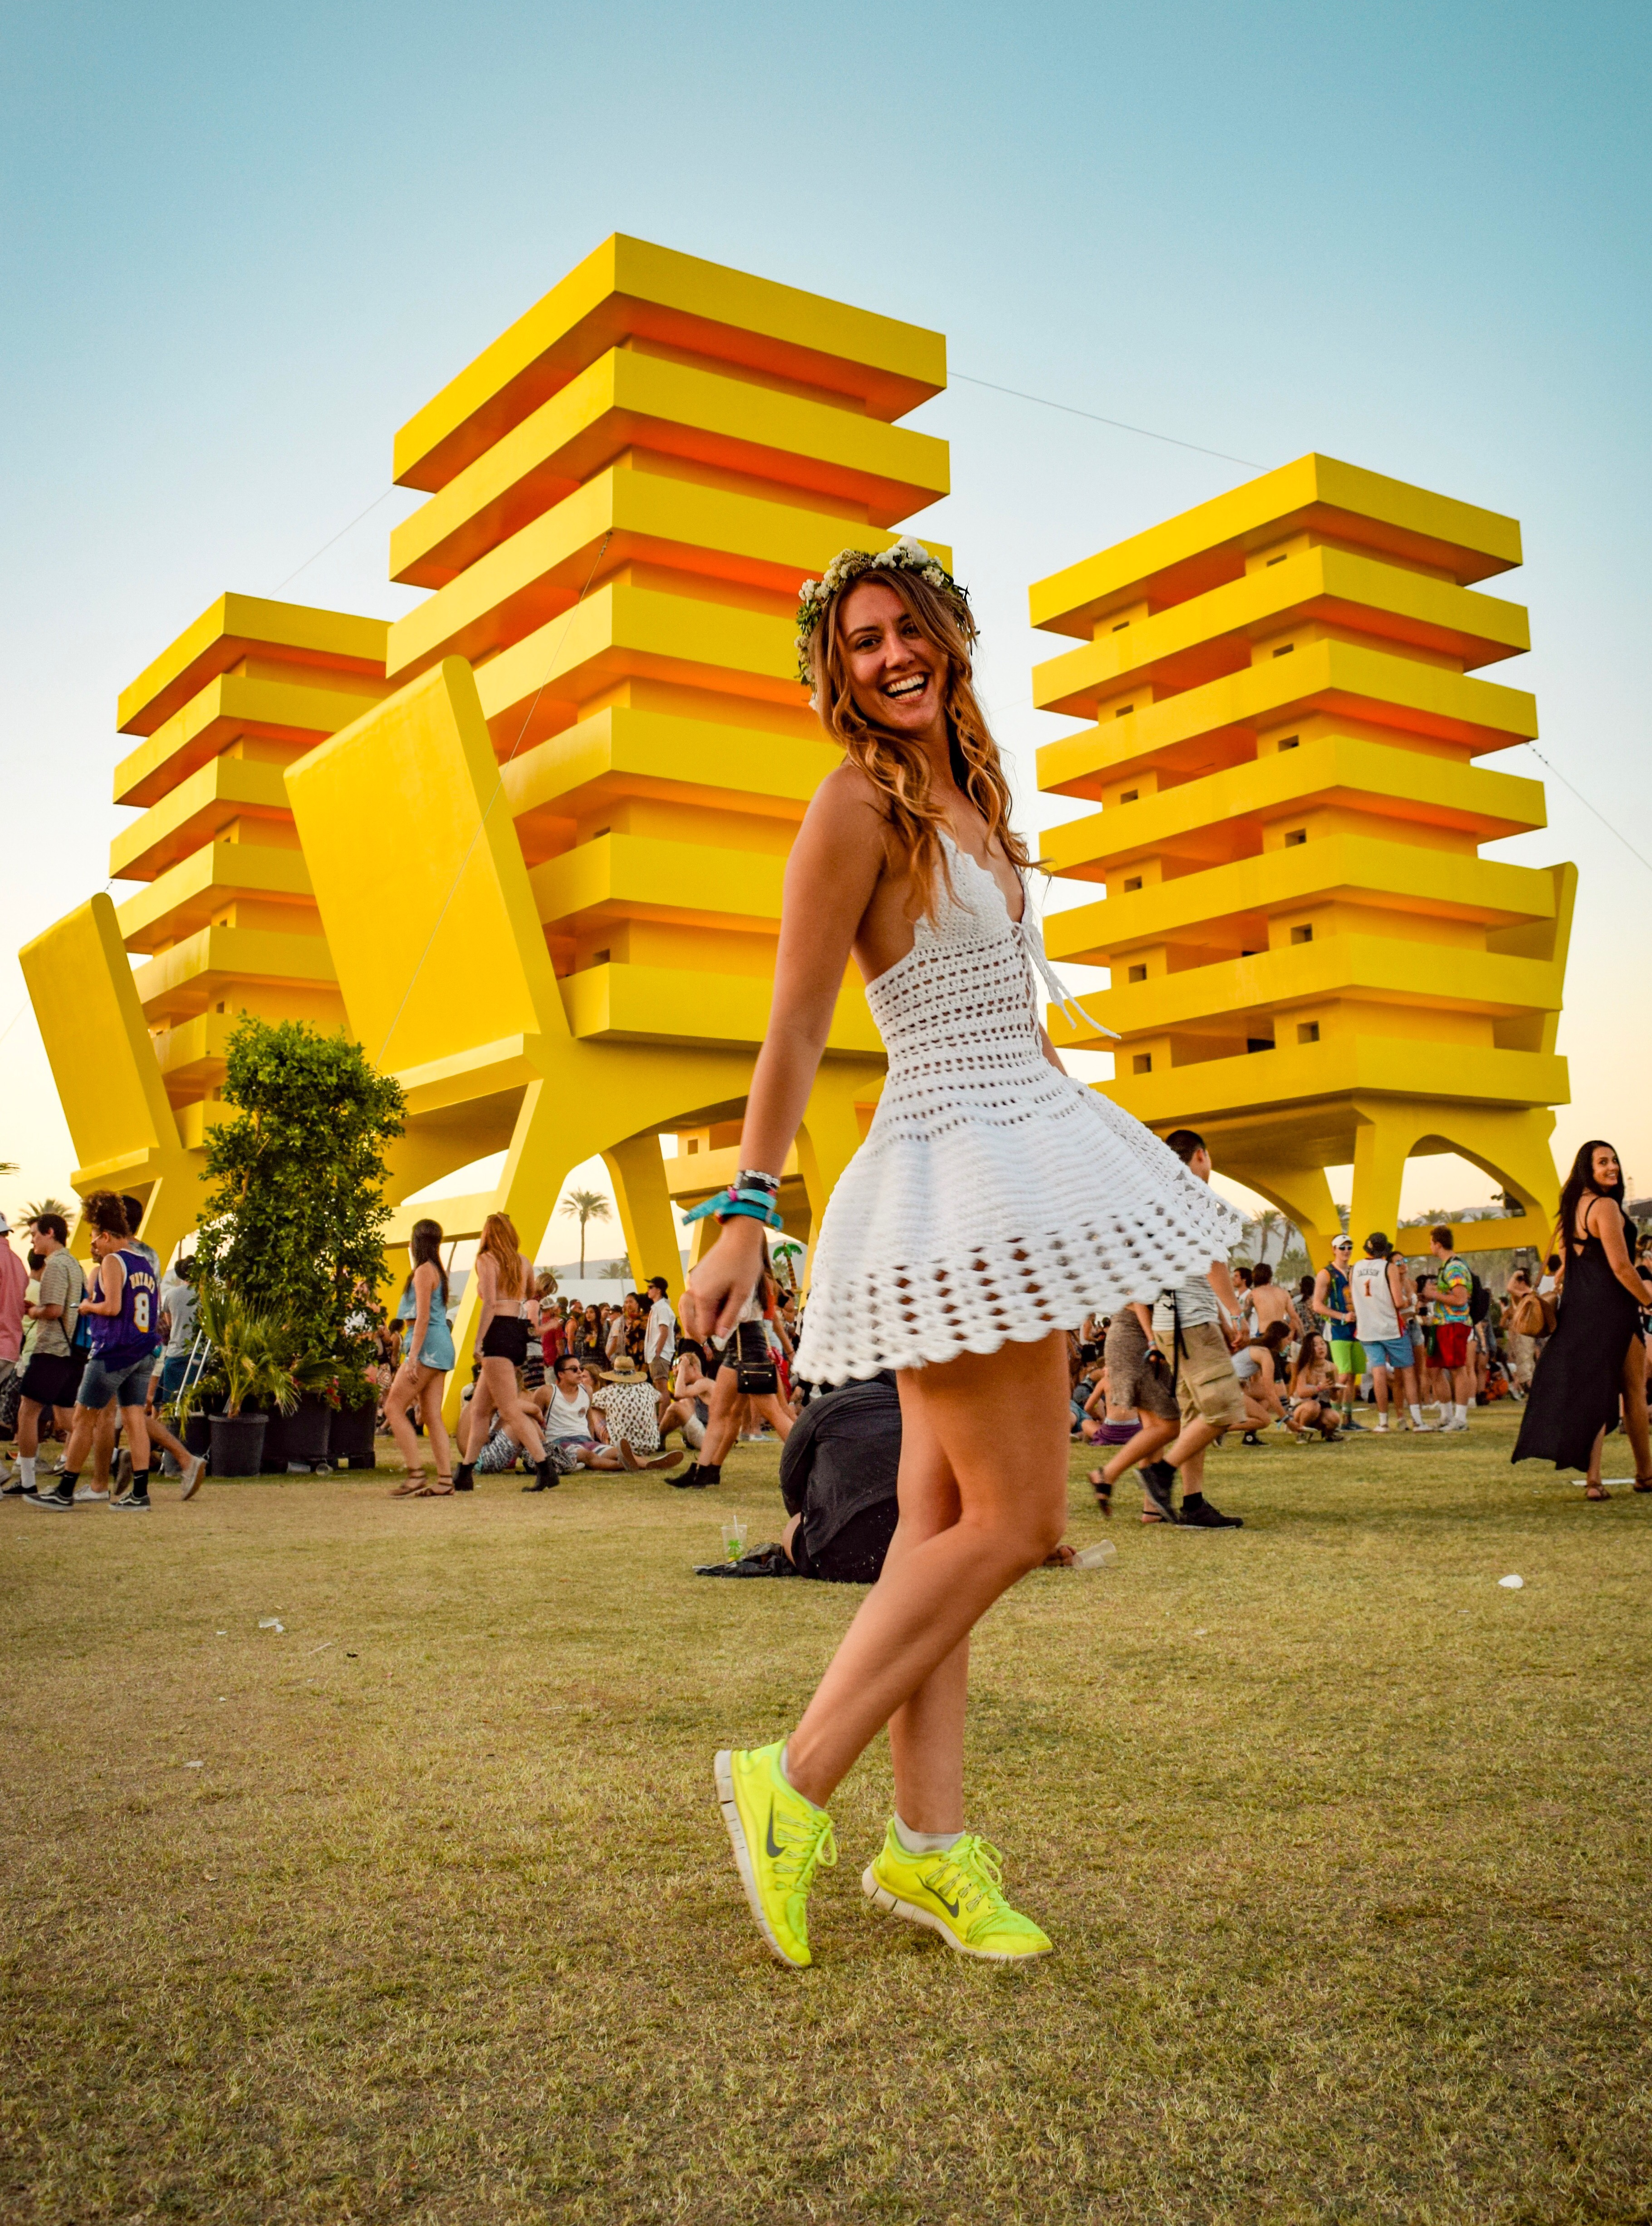 Guide To Coachella: Packing & Accommodations